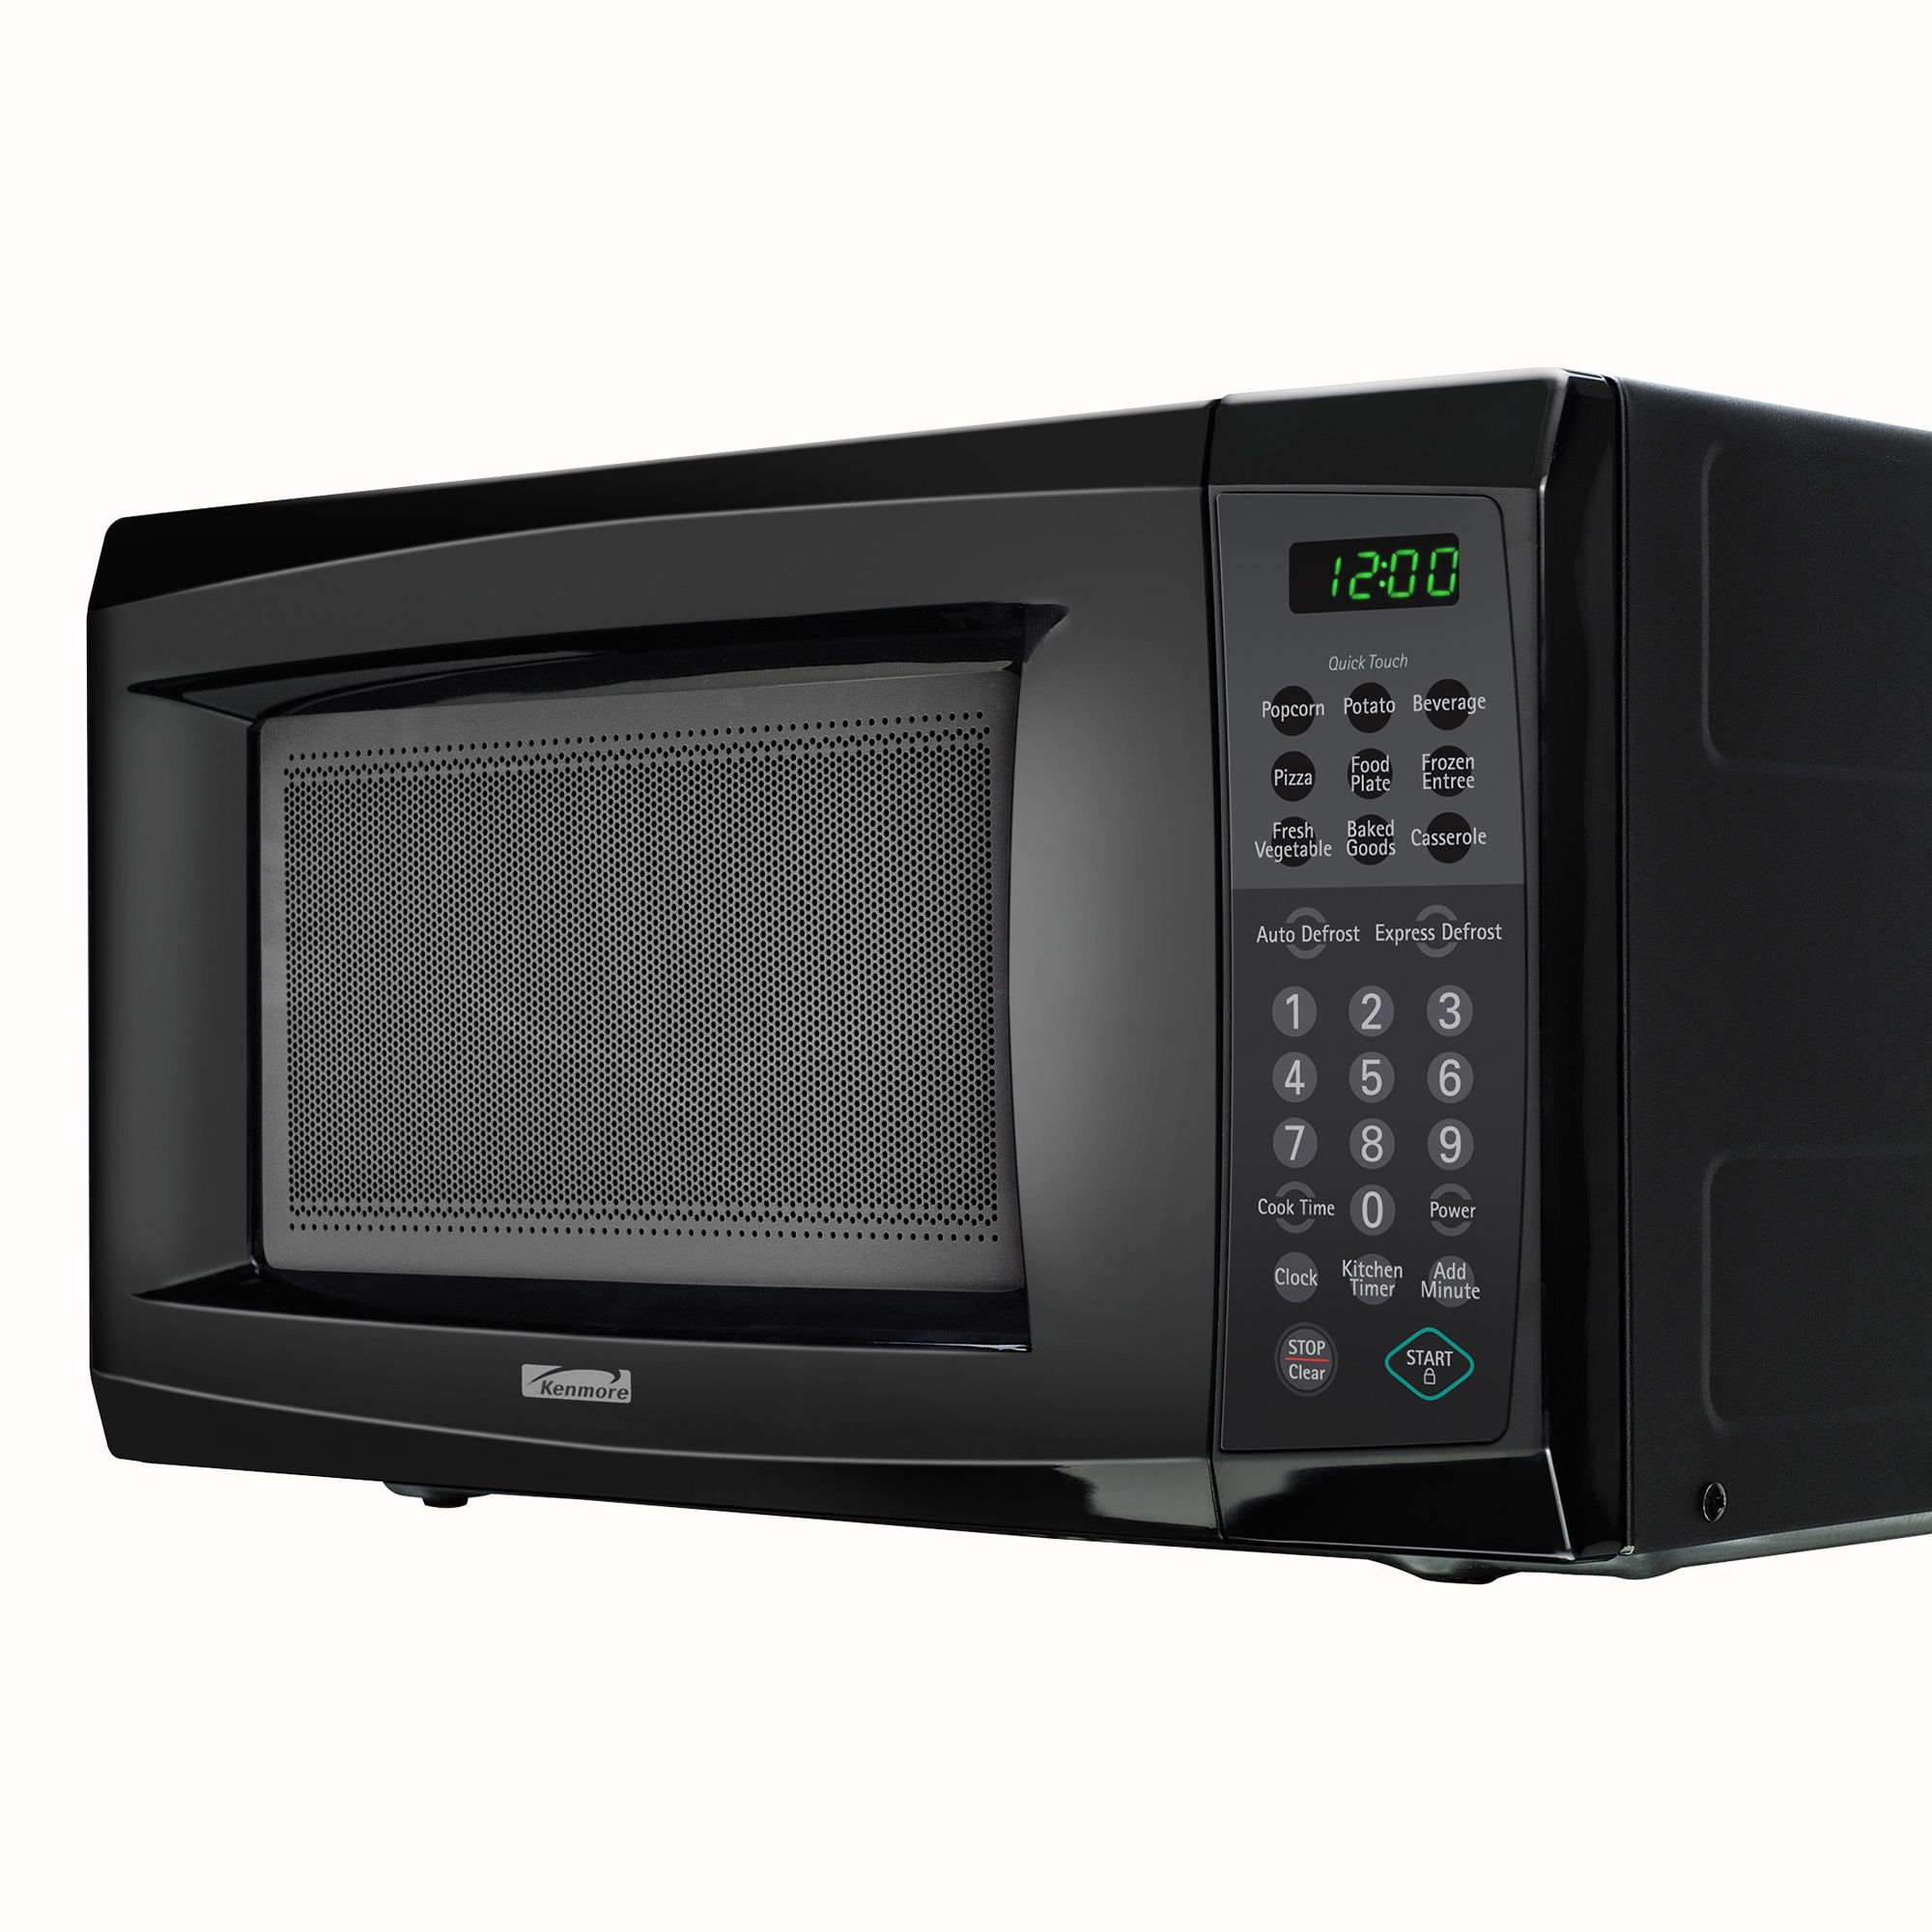 0.7 cu. ft. Countertop Microwave Oven - Black                                                                                    at mygofer.com